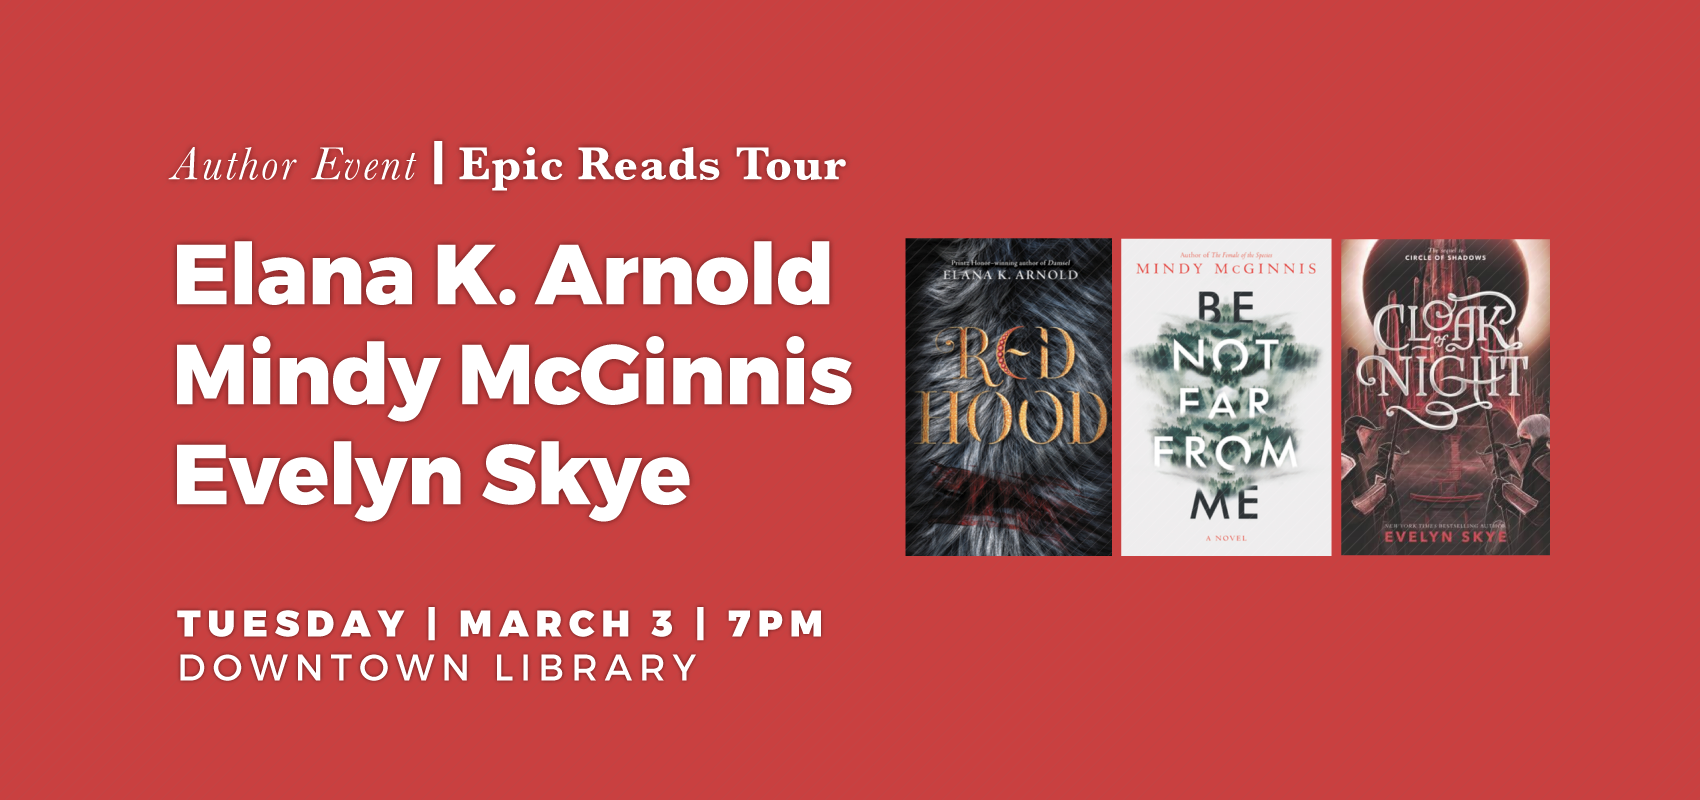 Author Event | Epic Reads Tour | Elana K. Arnold, Mindy McGinnis, Evelyn Skye. .